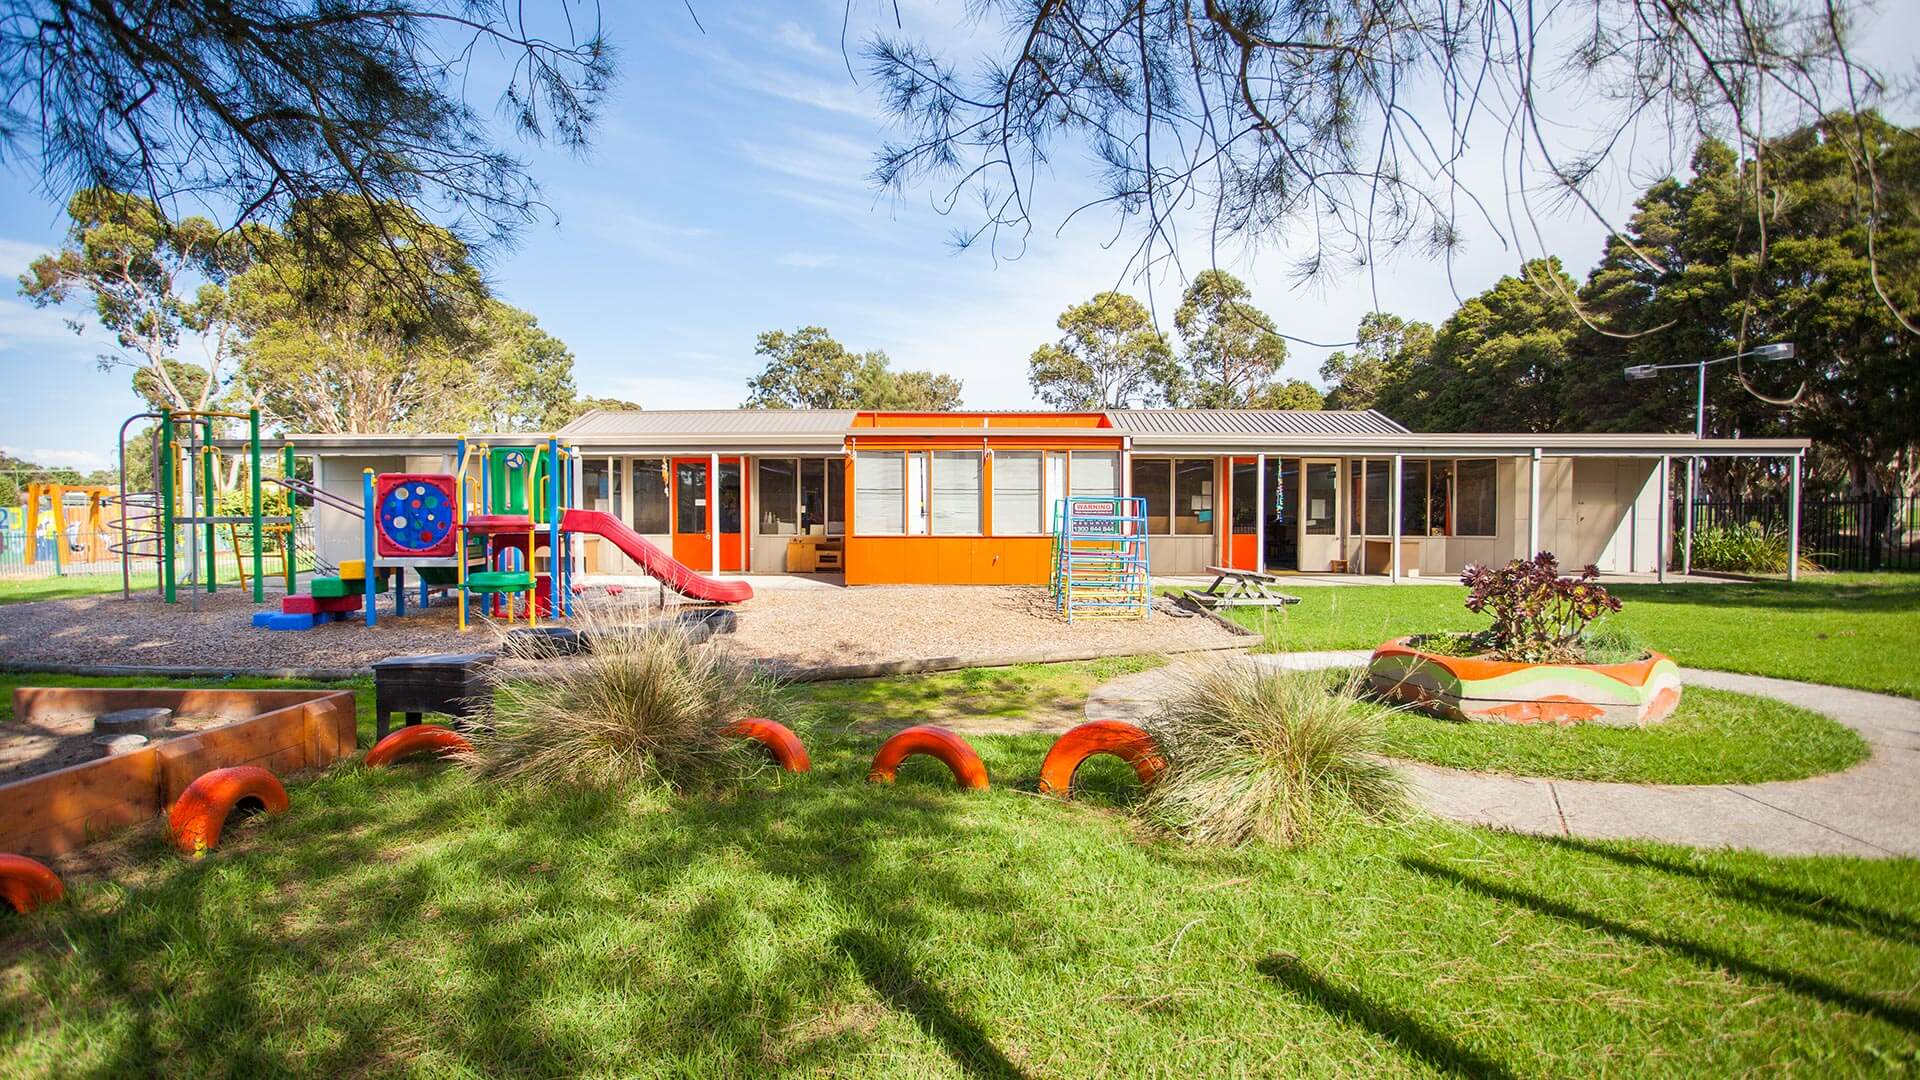 Landmark $202.1 million investment for early childhood